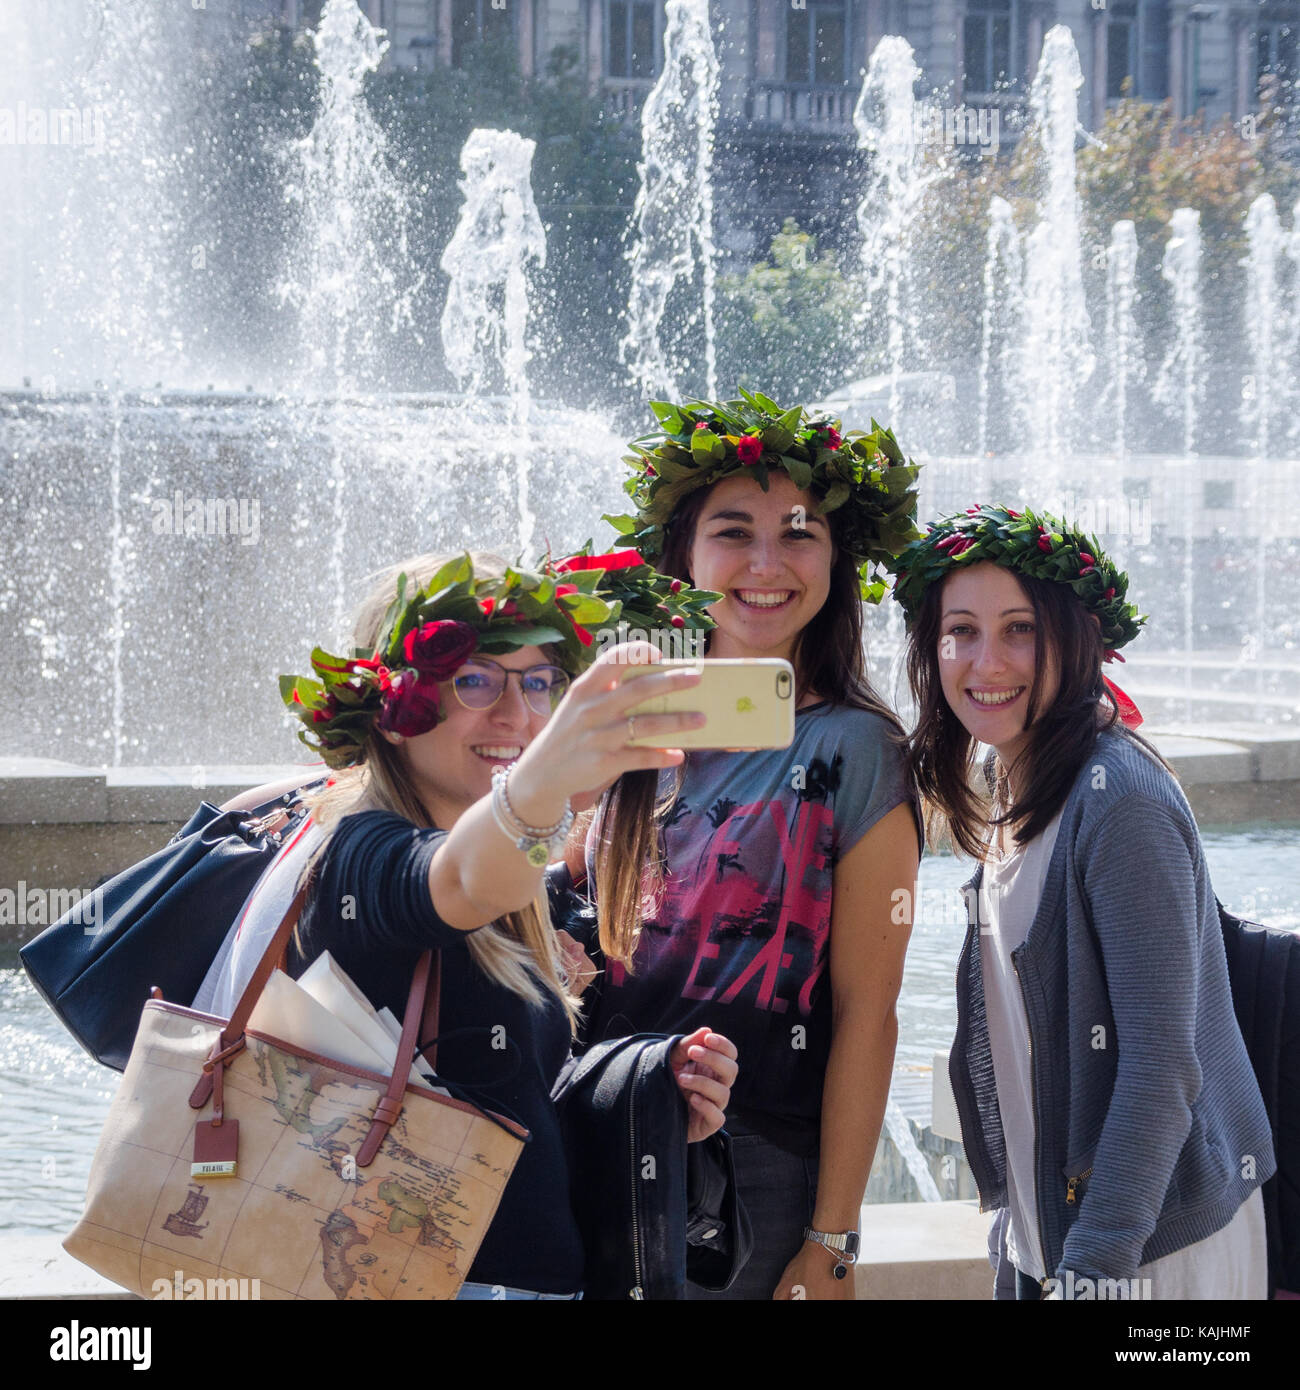 young-women-on-a-hen-party-pose-for-a-selfie-with-an-iphone-in-front-KAJHMF.jpg